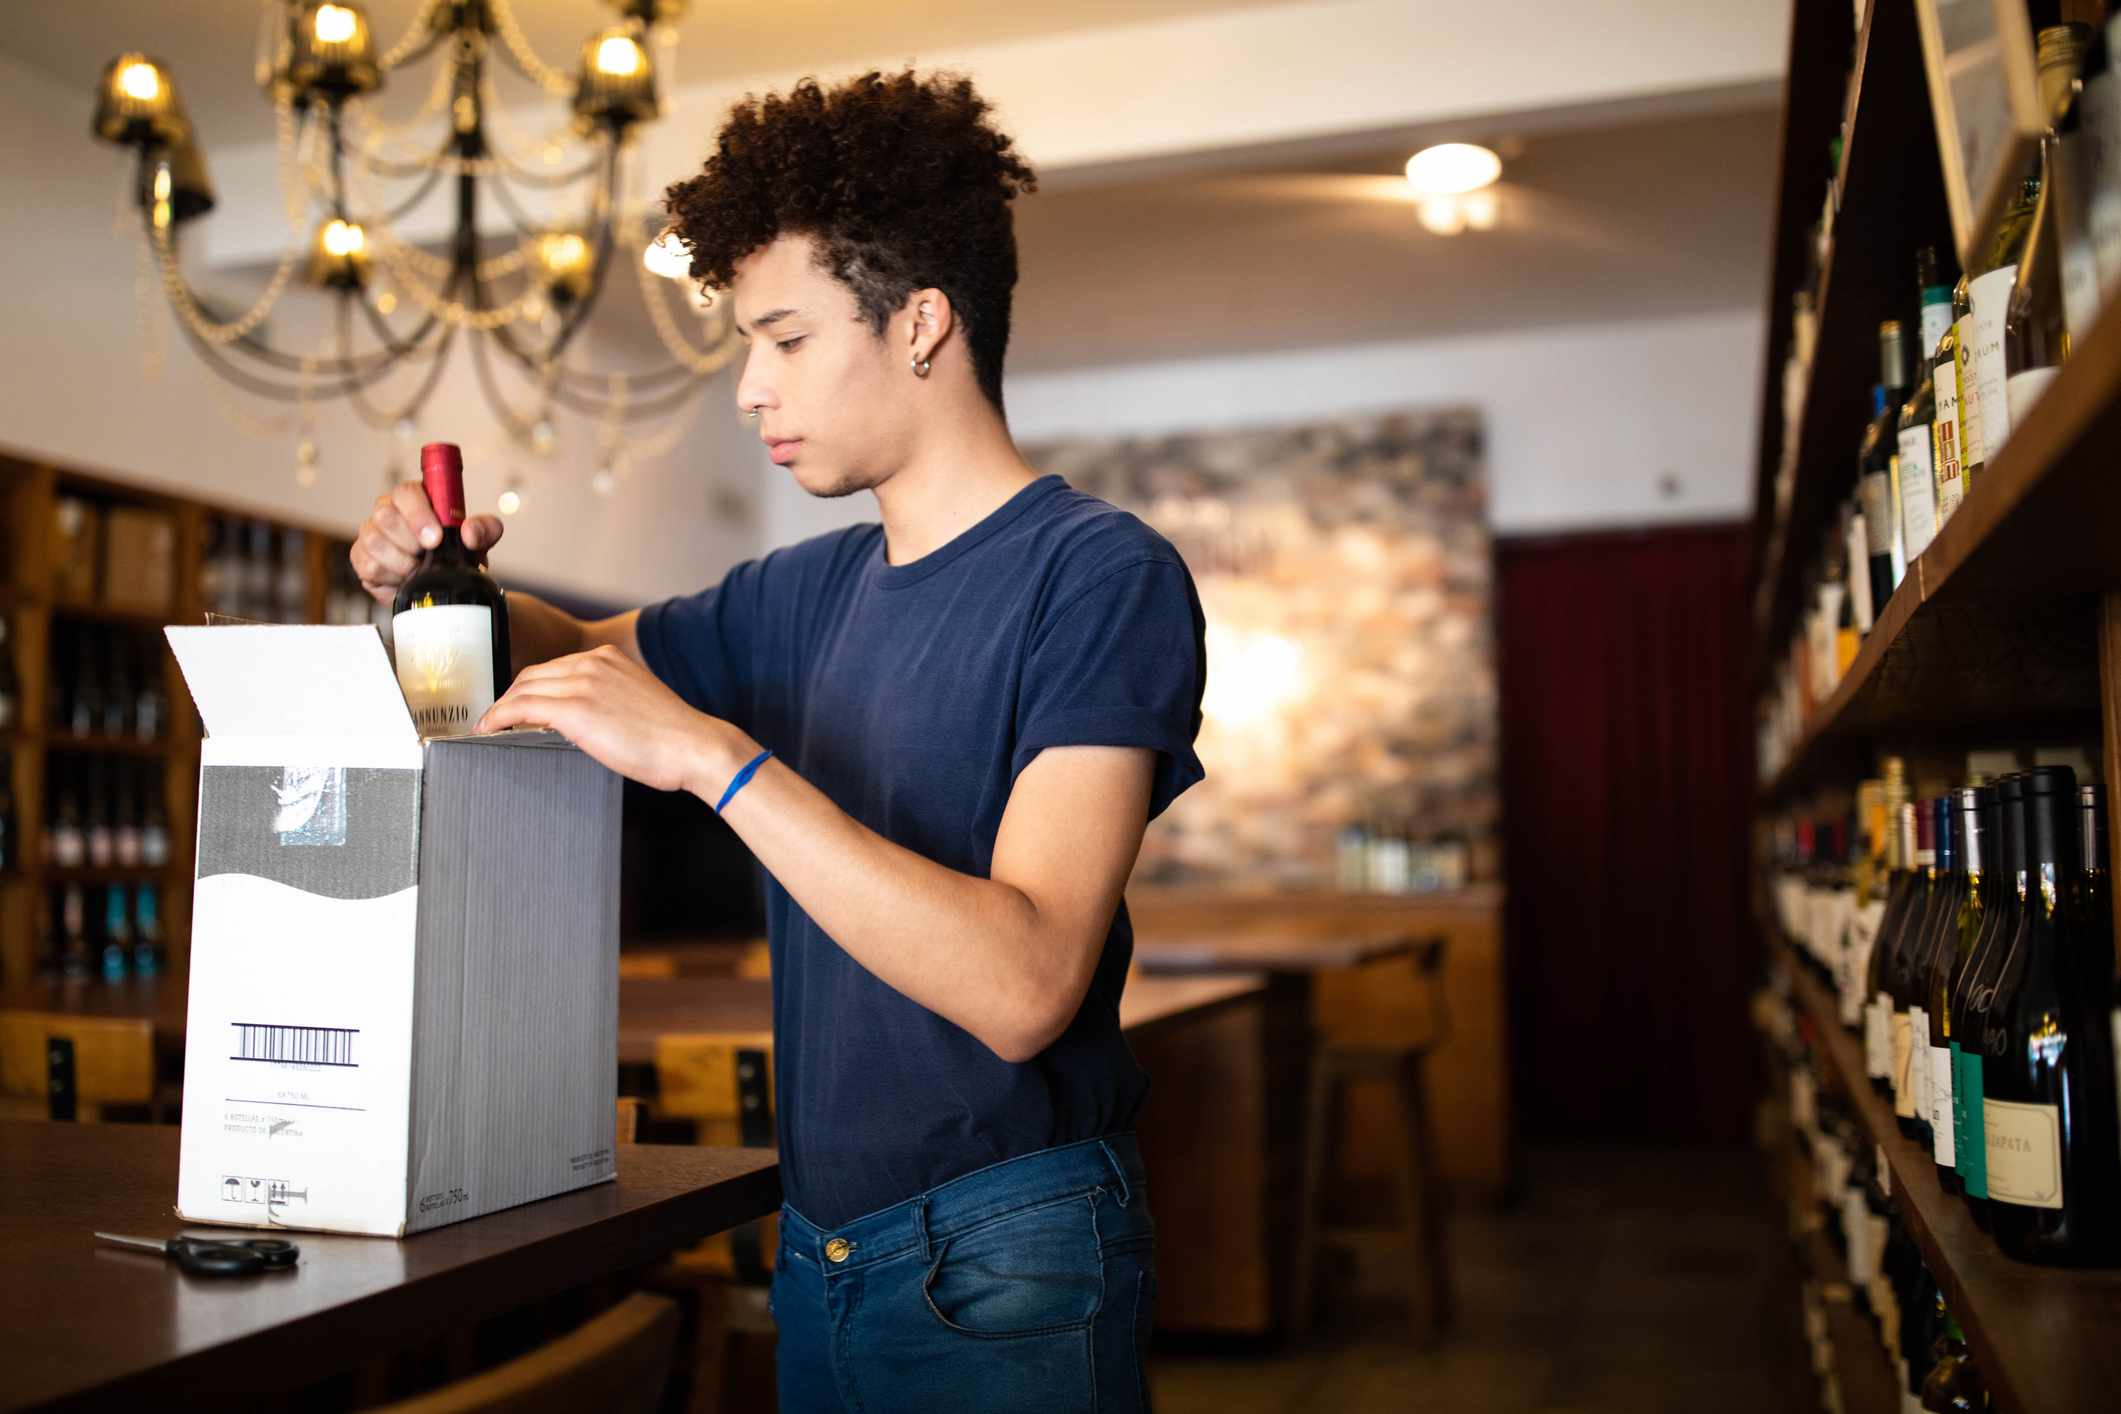 A young man unpacks wine in a shop.